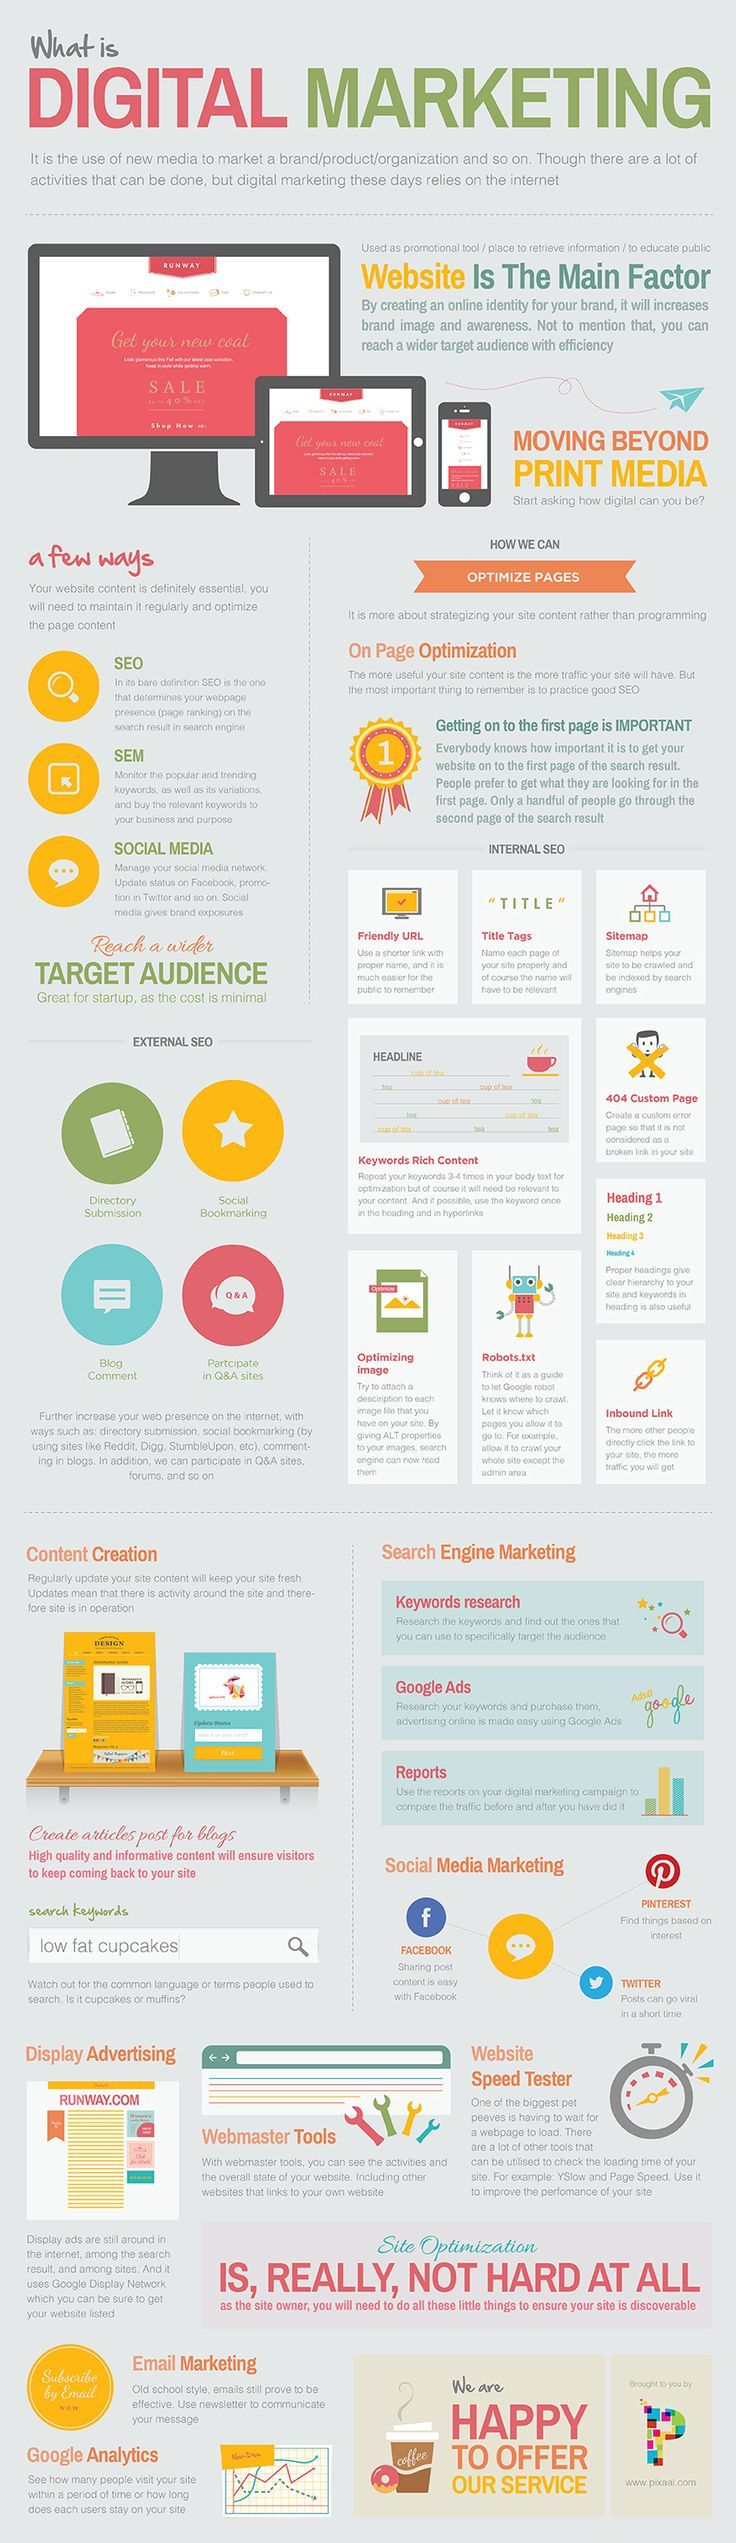 A LA DÉCOUVERTE DU DIGITAL MARKETING, EN INFOGRAPHIE